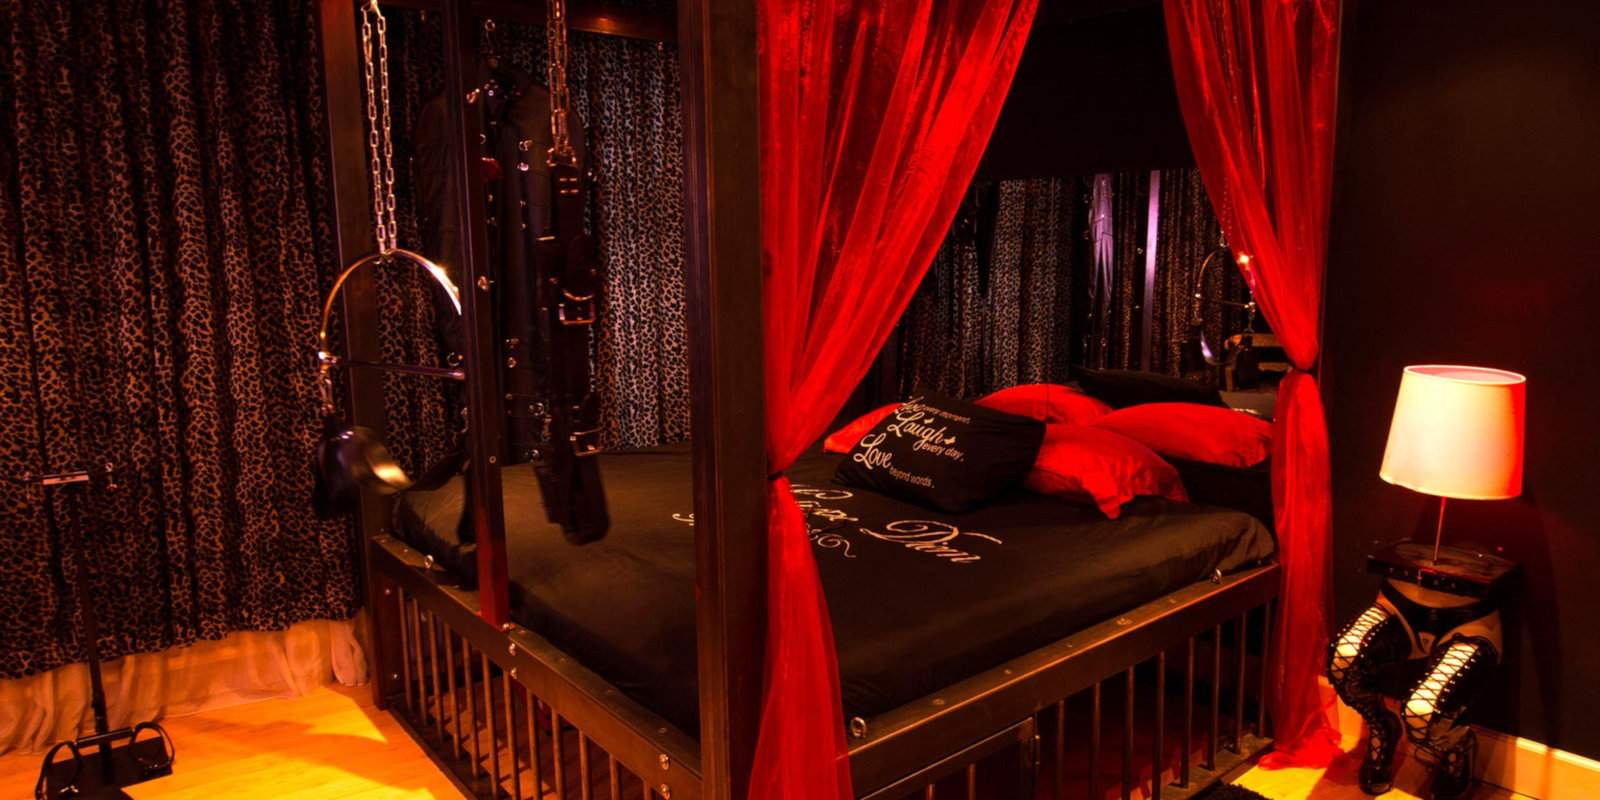 For a very naughty night, stay at the Kinky Suite in the heart of Amsterdam's Red Light District